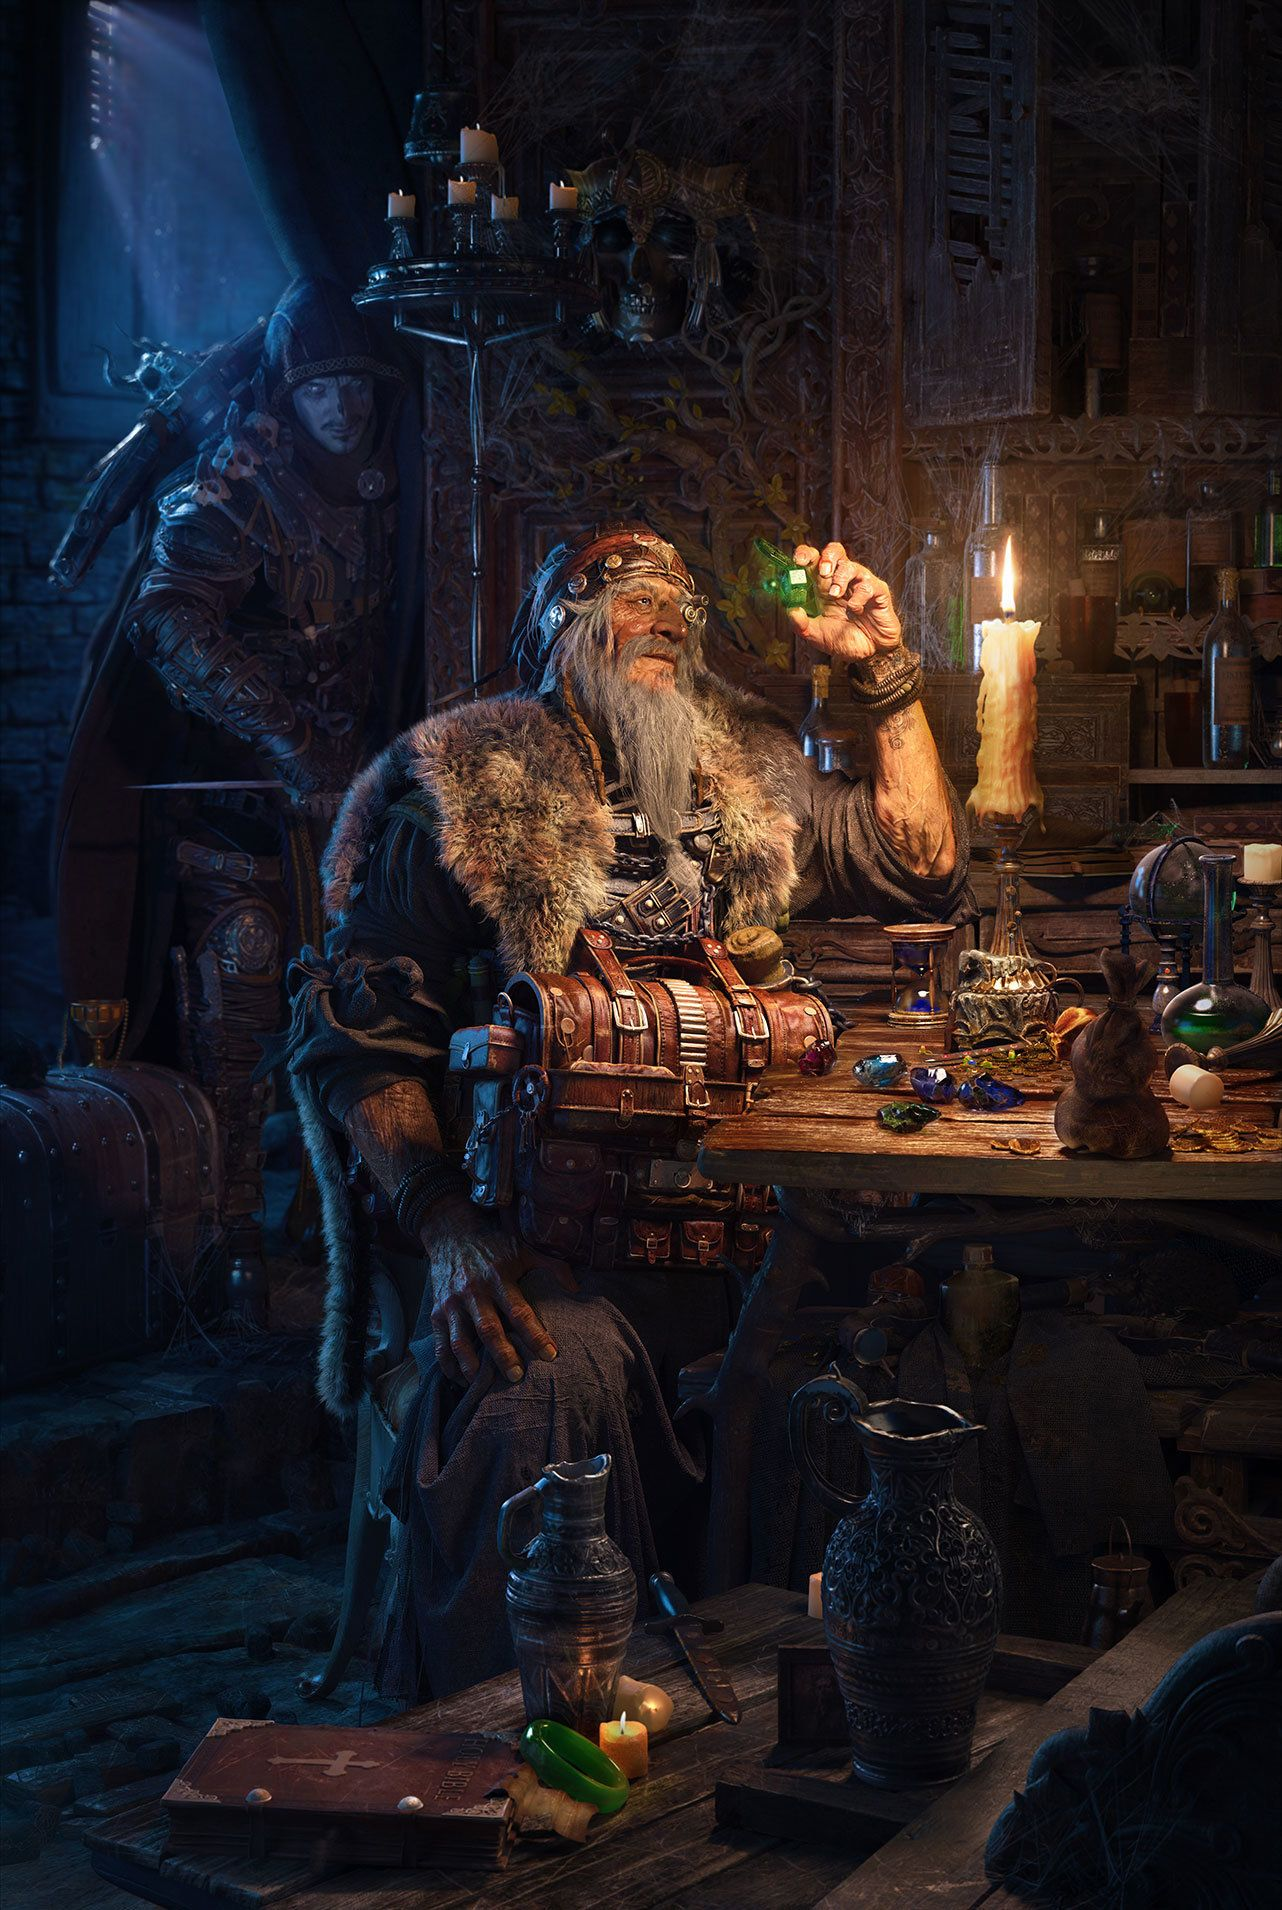 ArtStation - Orphan and the jeweler, yao linger